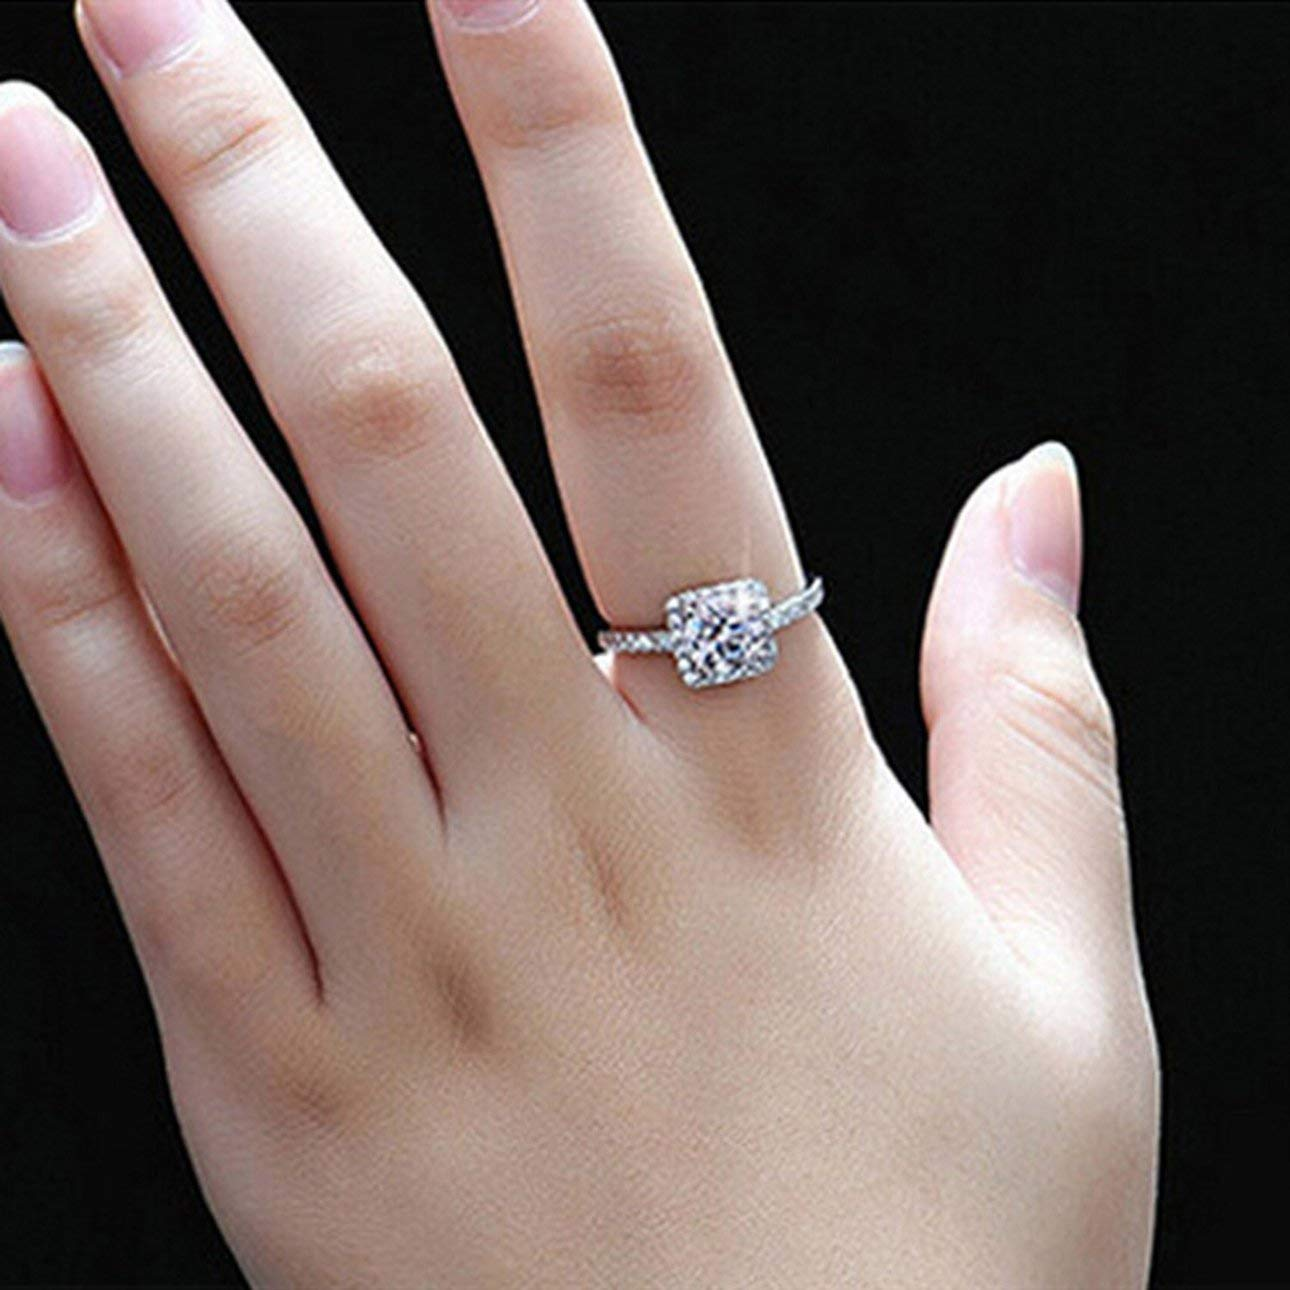 Liobaba Women Rings Female Ornament Exquisite White Sapphire Silver Plated Filled Wedding Ring Jewelry Wedding Accessories